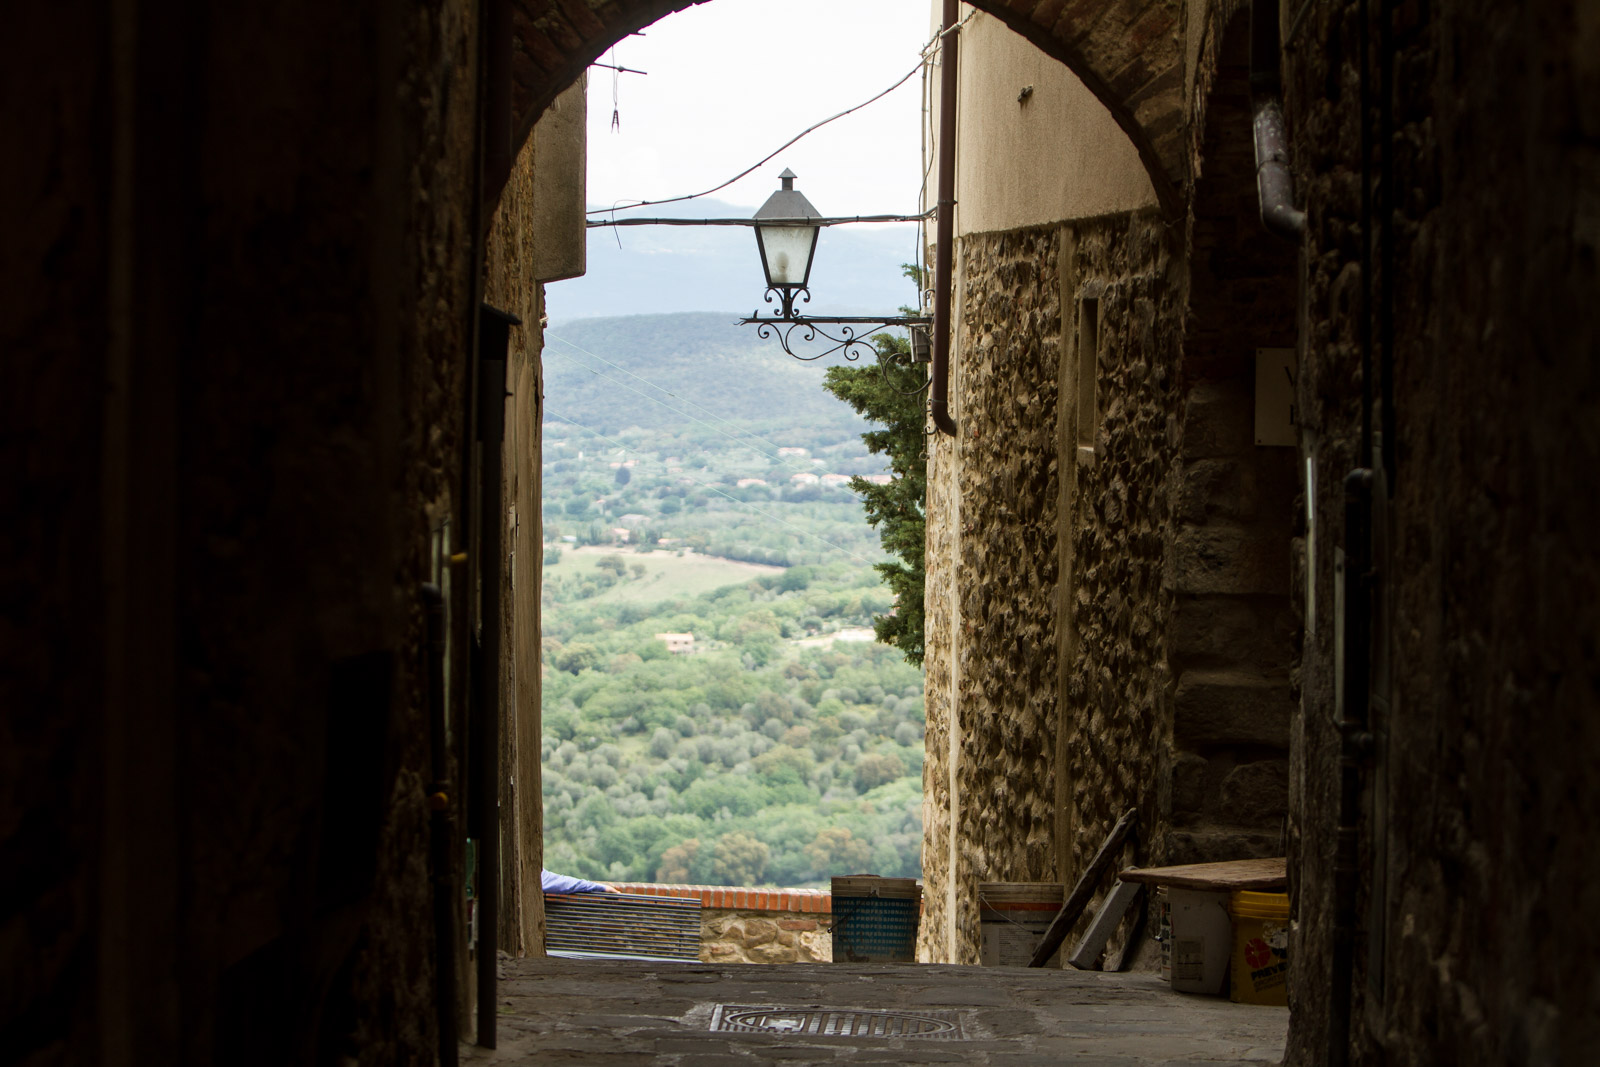 A mediveal feel with archways and views across the countryside.